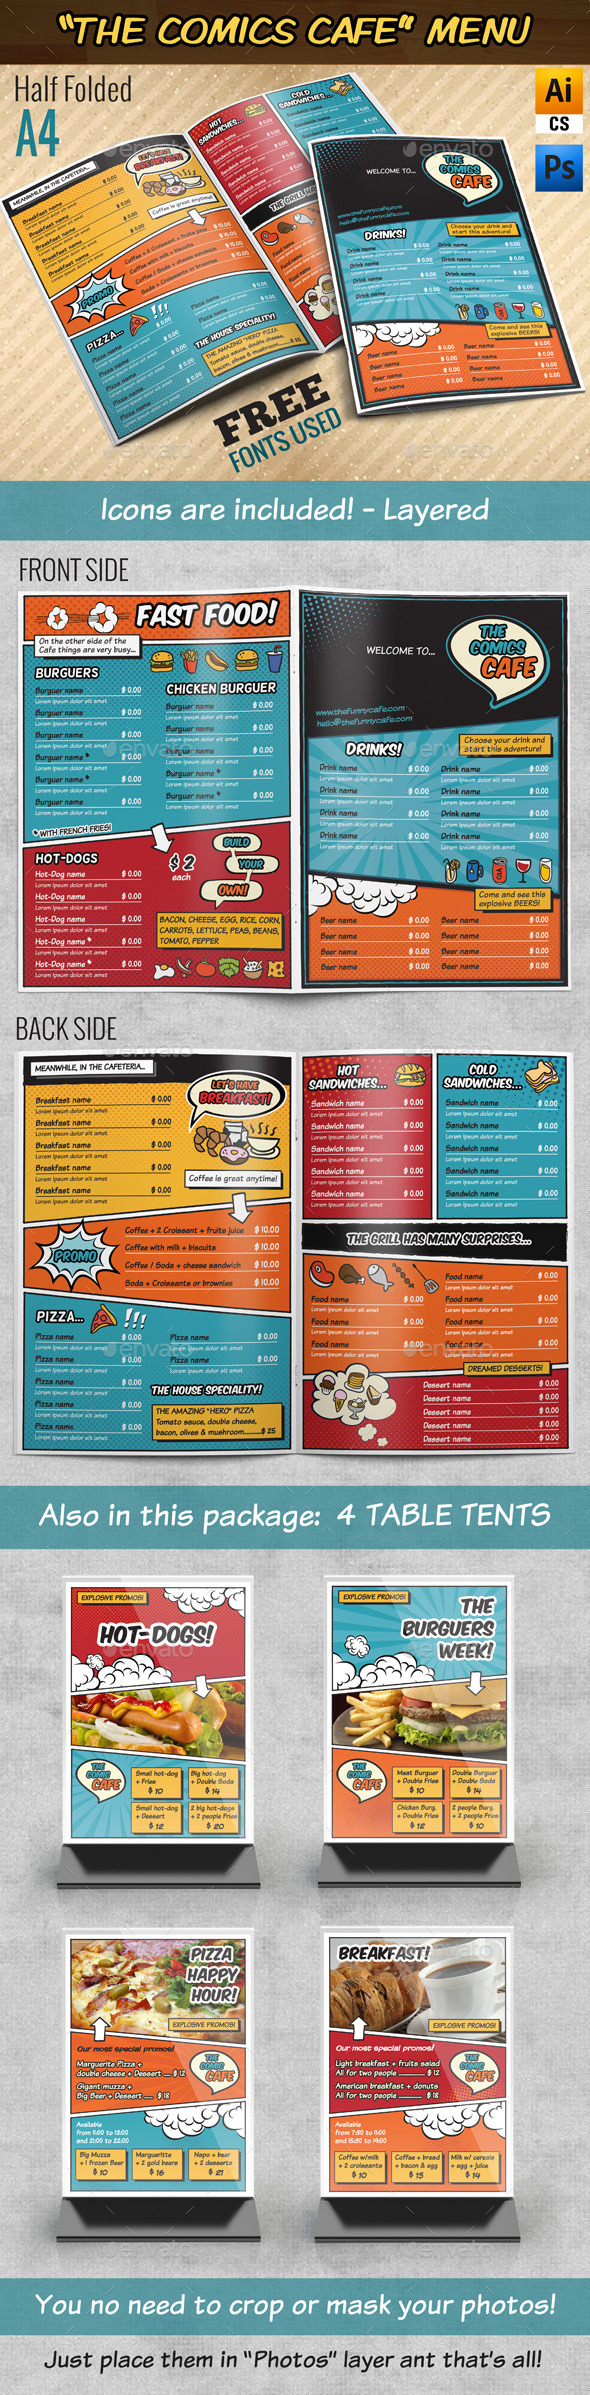 The Comics Cafe Menu A4 Half folded